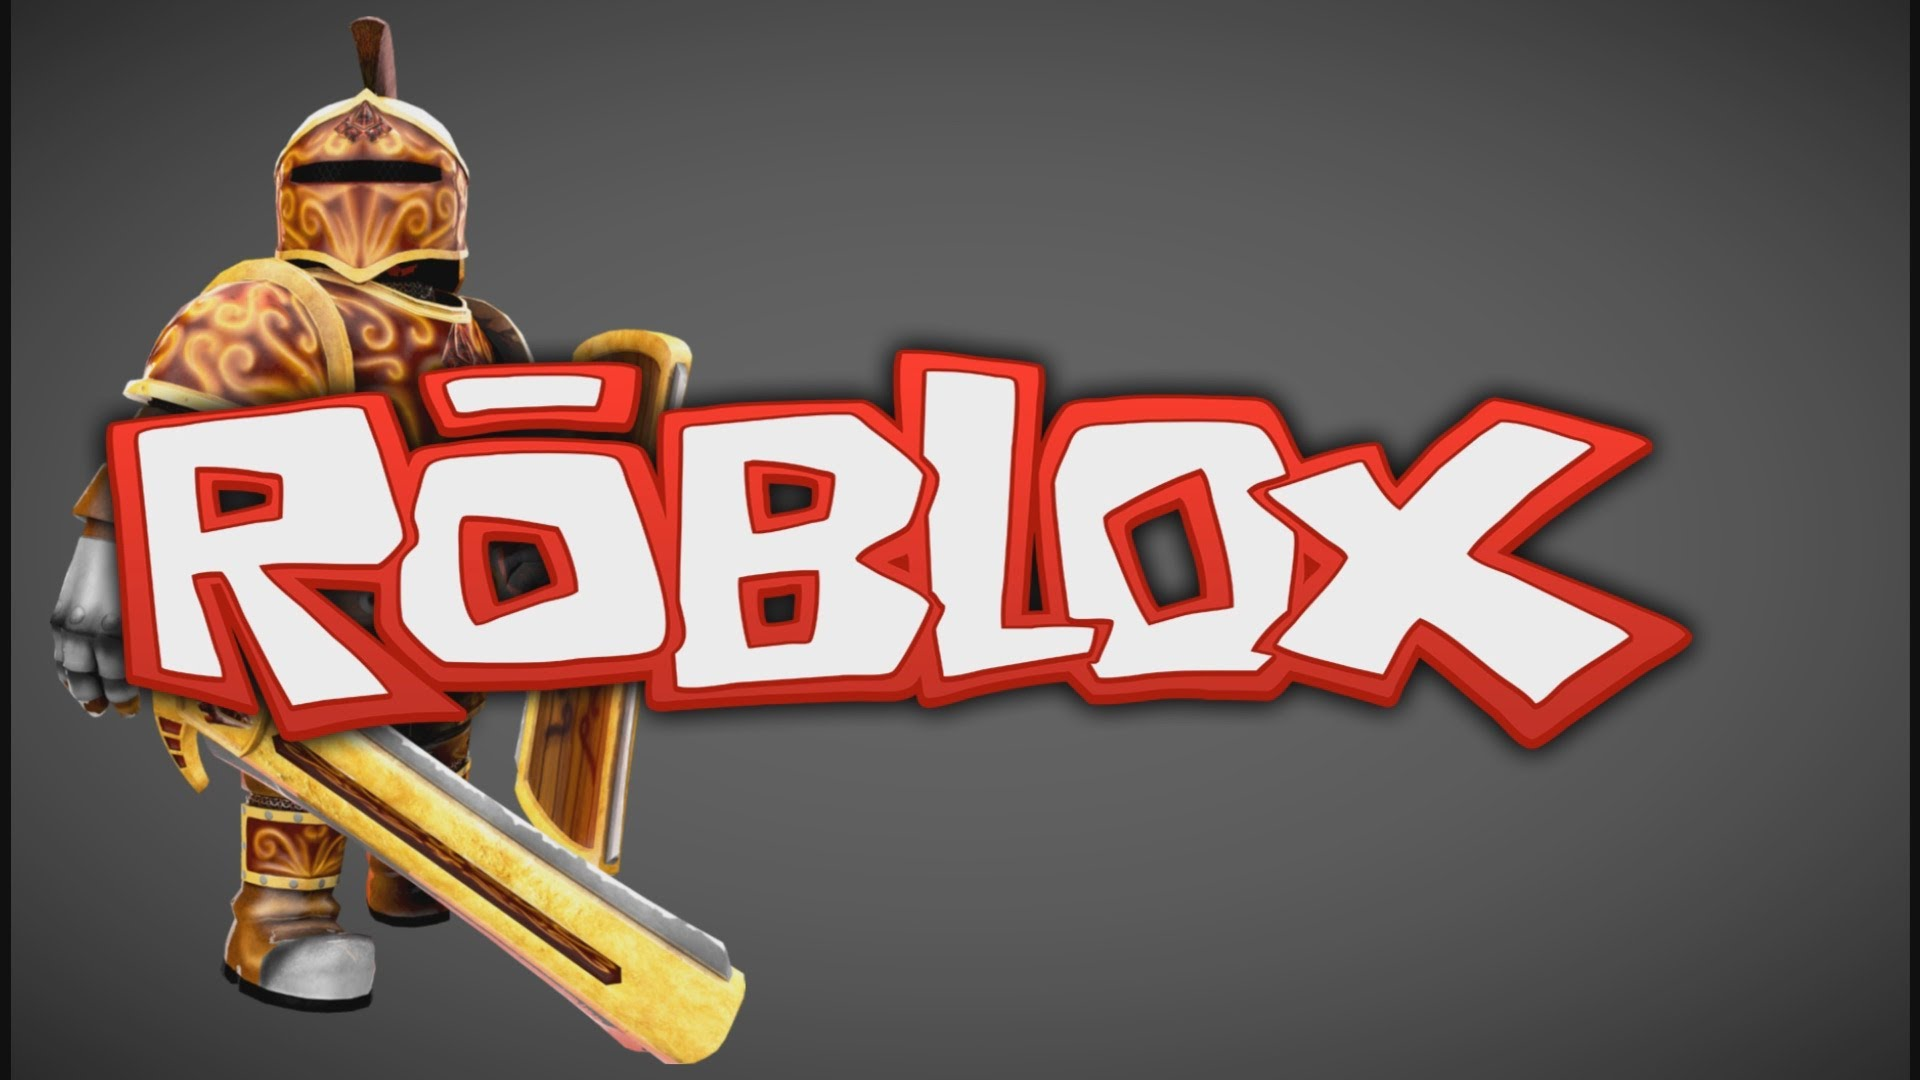 Make A ROBLOX Wallpaper  WallpaperSafari